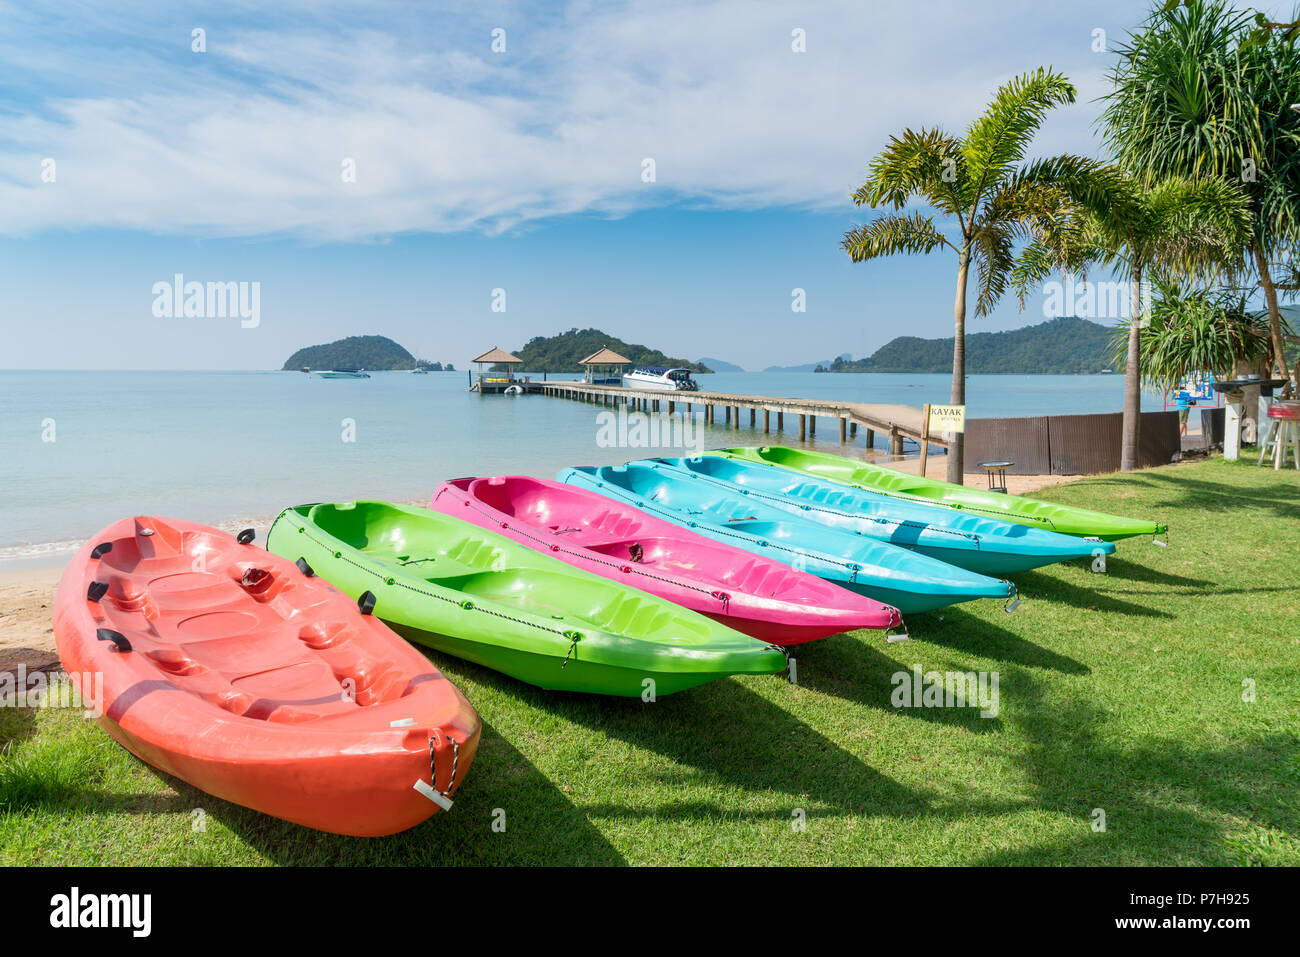 Colorful kayaks on the tropical beach in Phuket, Thailand. Summer, Vacation and Travel concept. Stock Photo